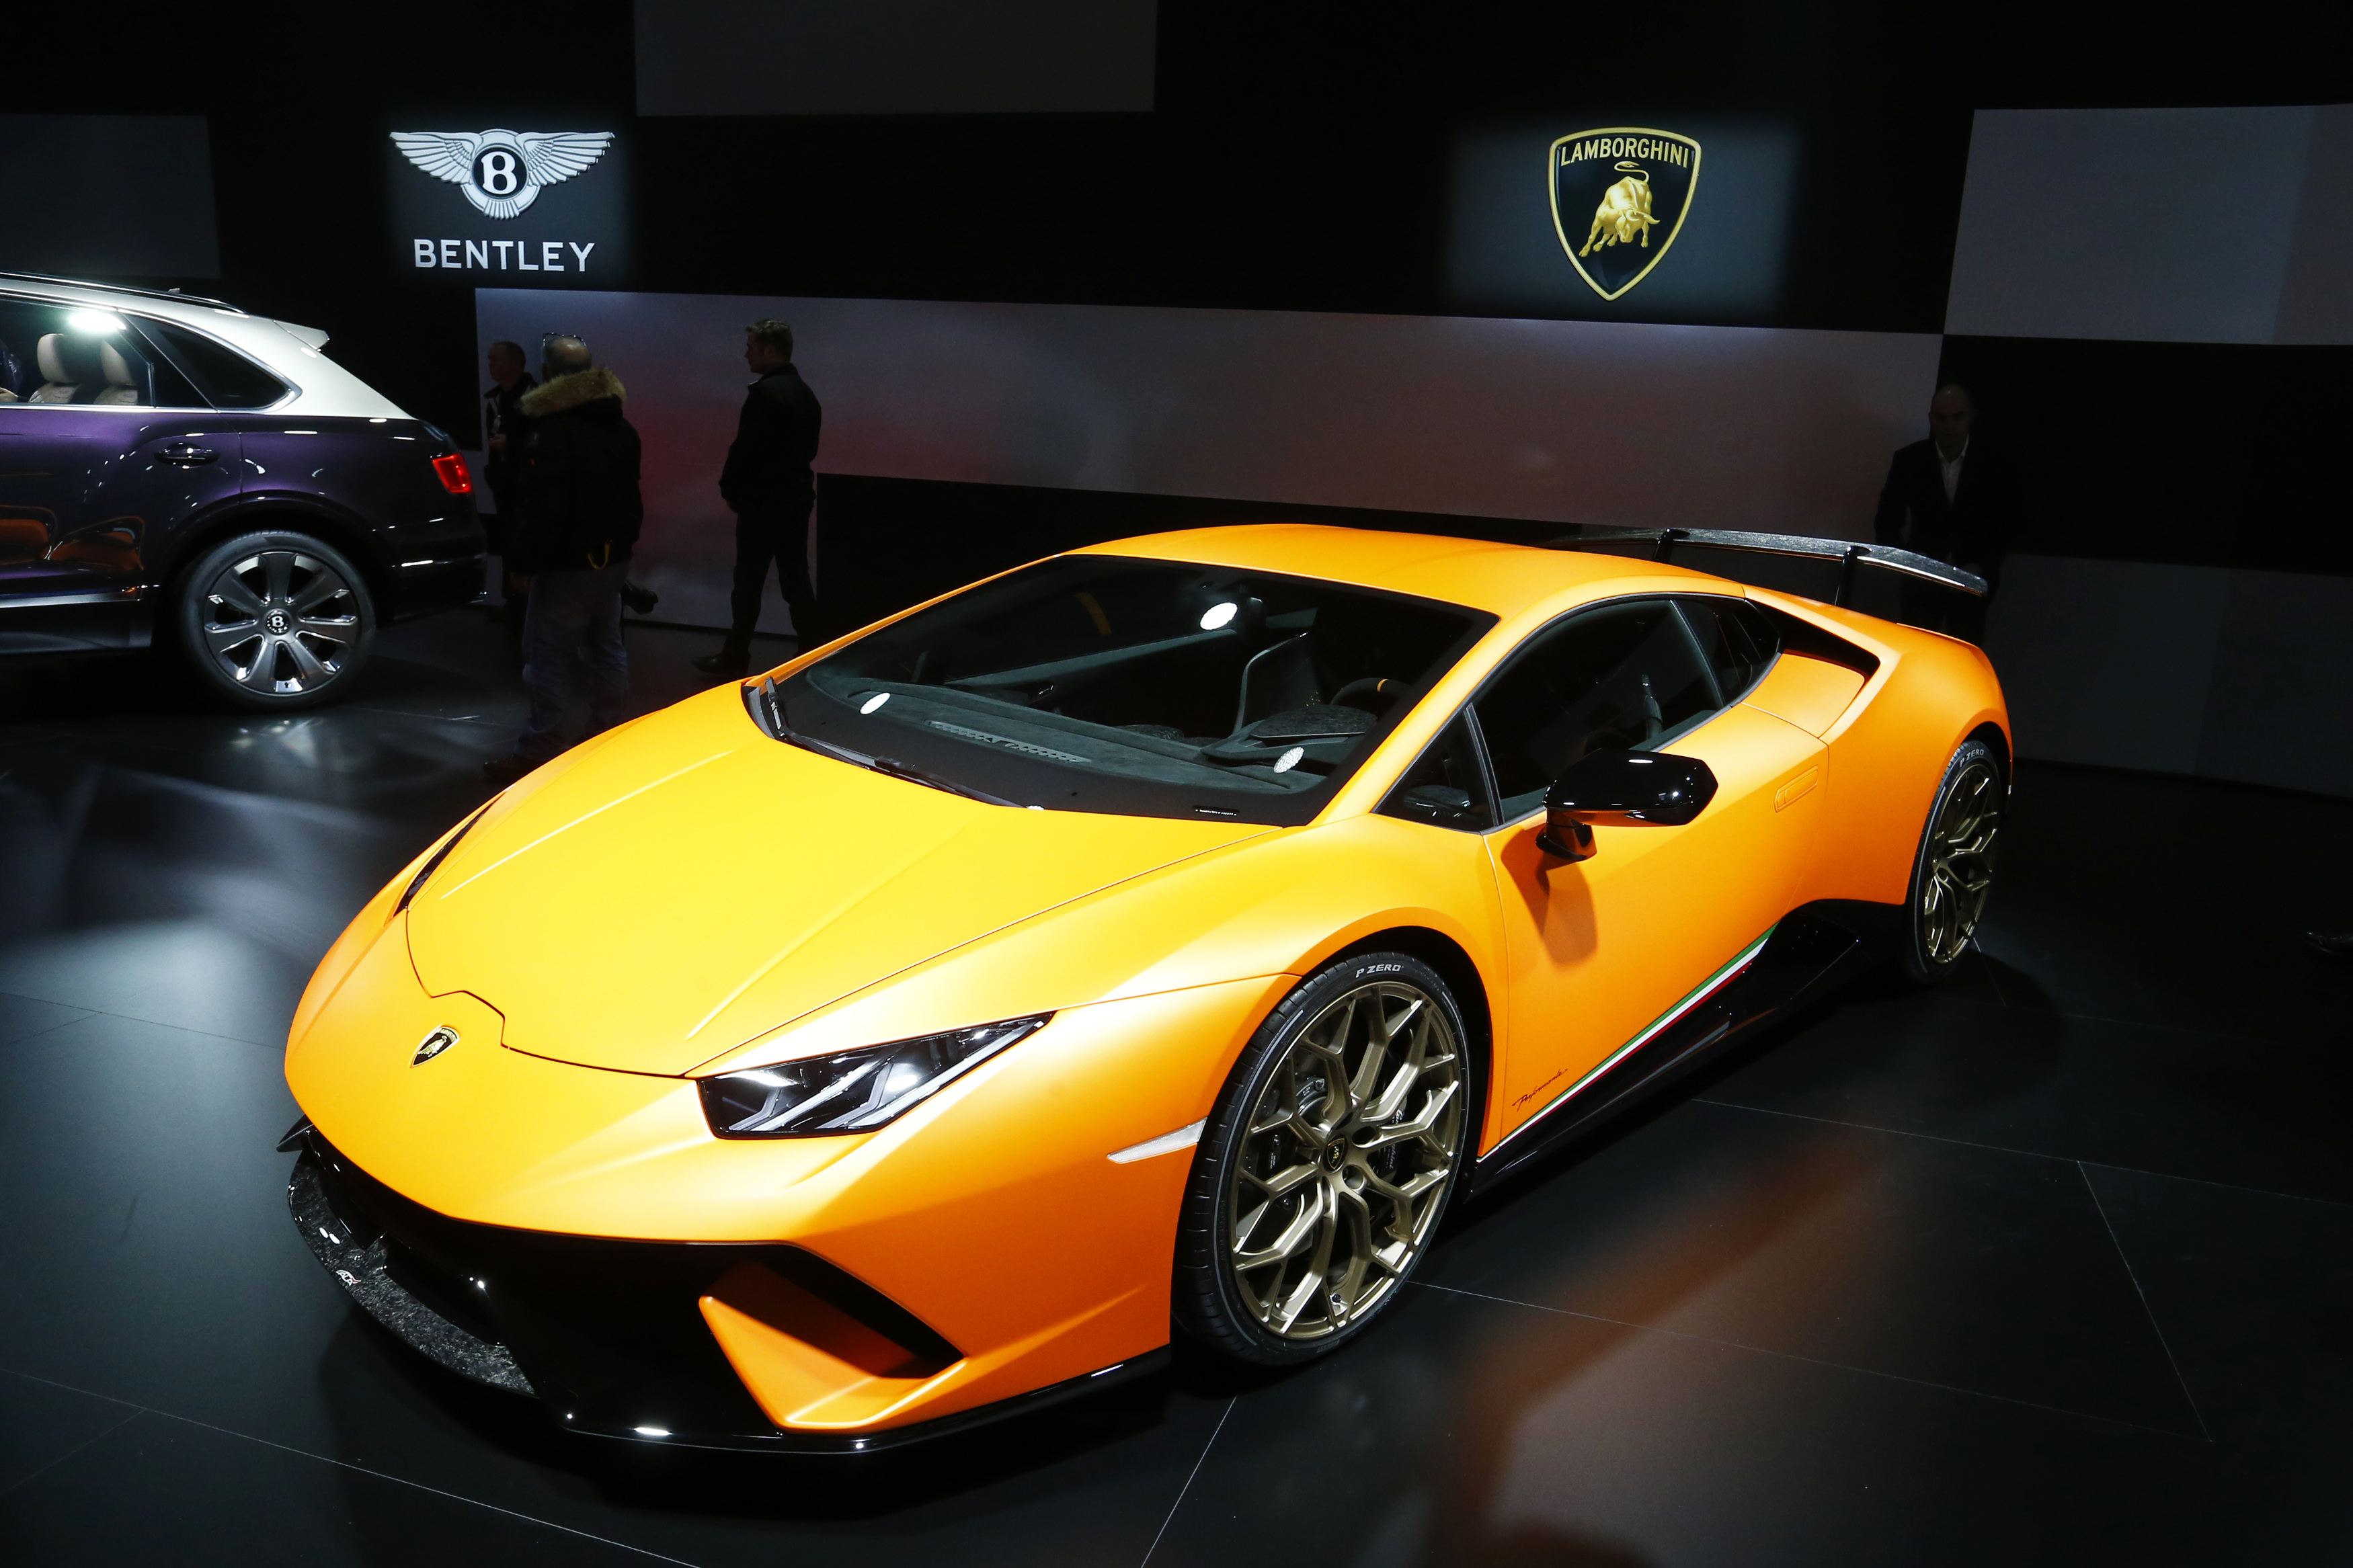 Lamborghini Huracan Performante car is seen during the 87th International Motor Show at Palexpo in Geneva